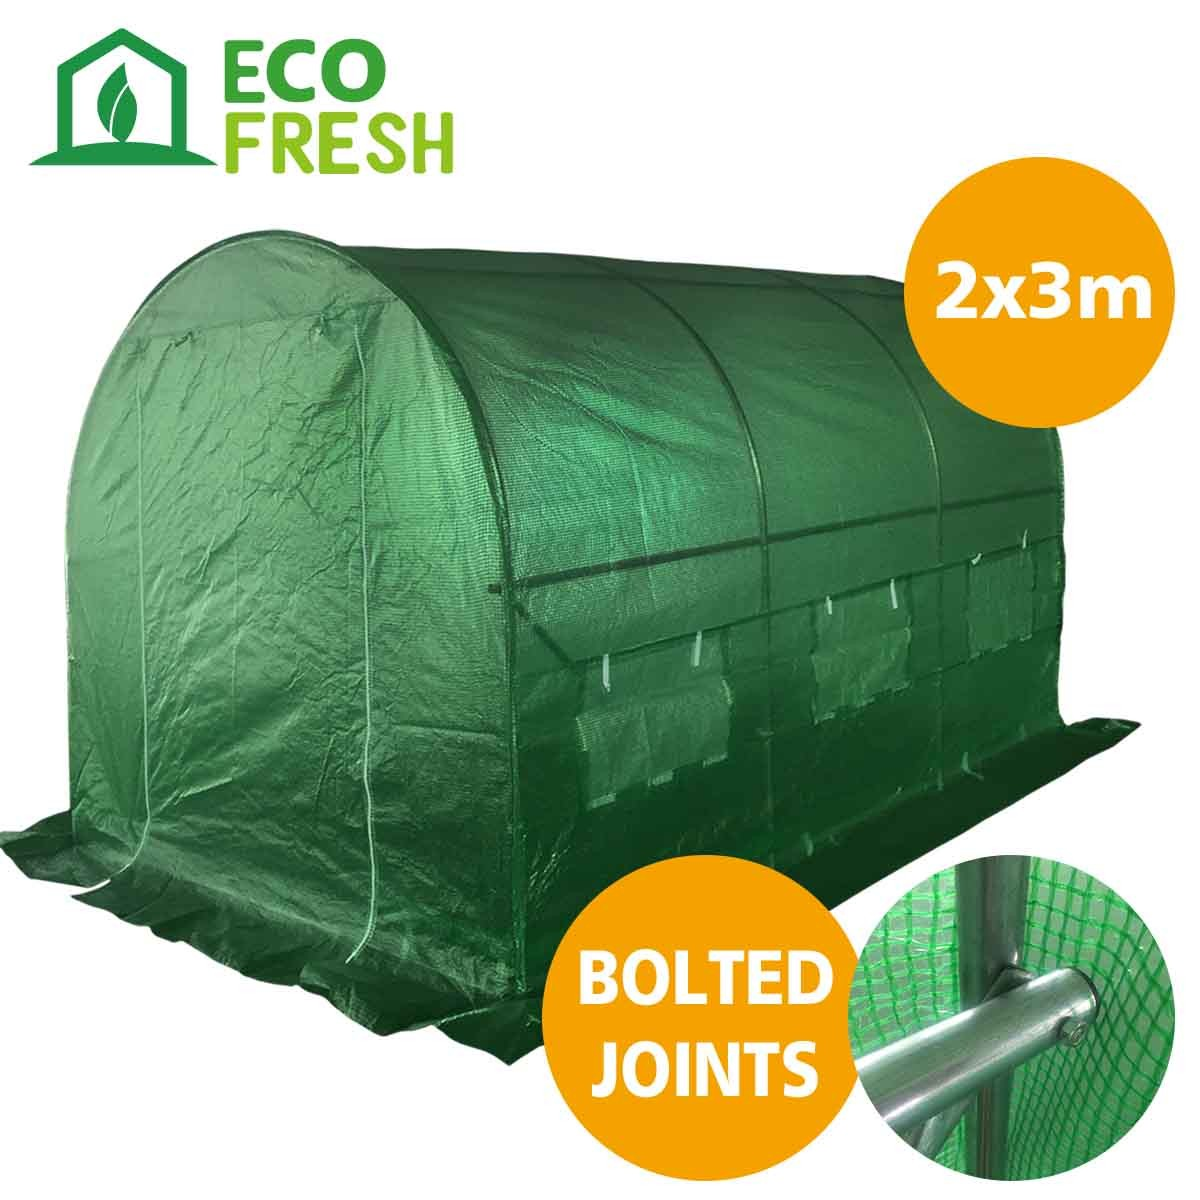 Ecofresh walk in greenhouse 3m x 2m x 2m wholesales direct for Cuisine 3m x 2m